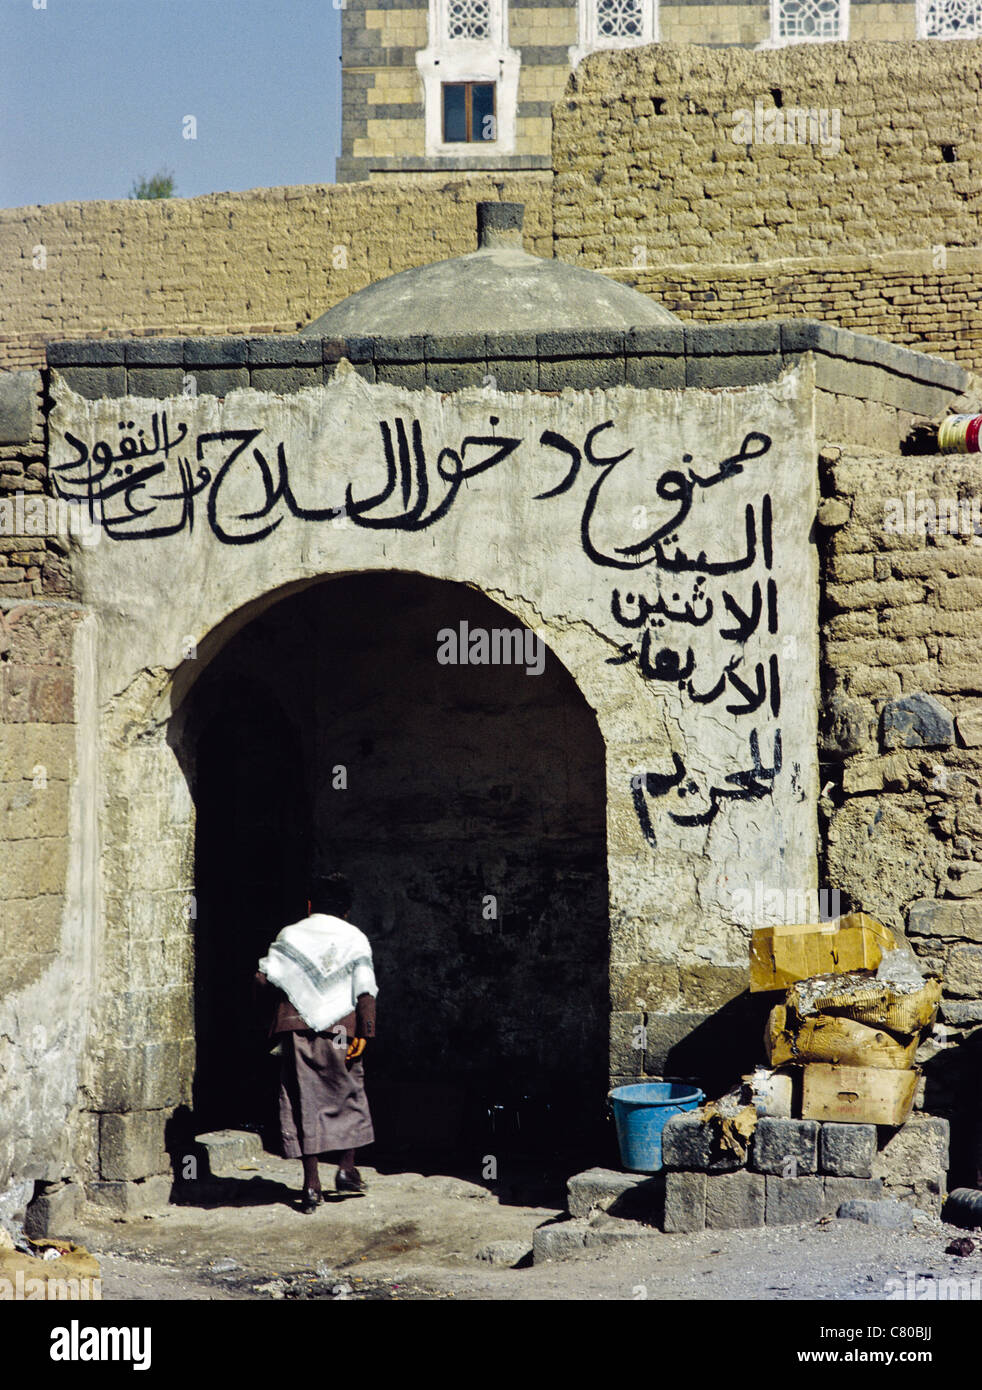 Child entering a building with Arabic calligraphy over the doorway in the Old City of Sana'a, Yemen - Stock Image